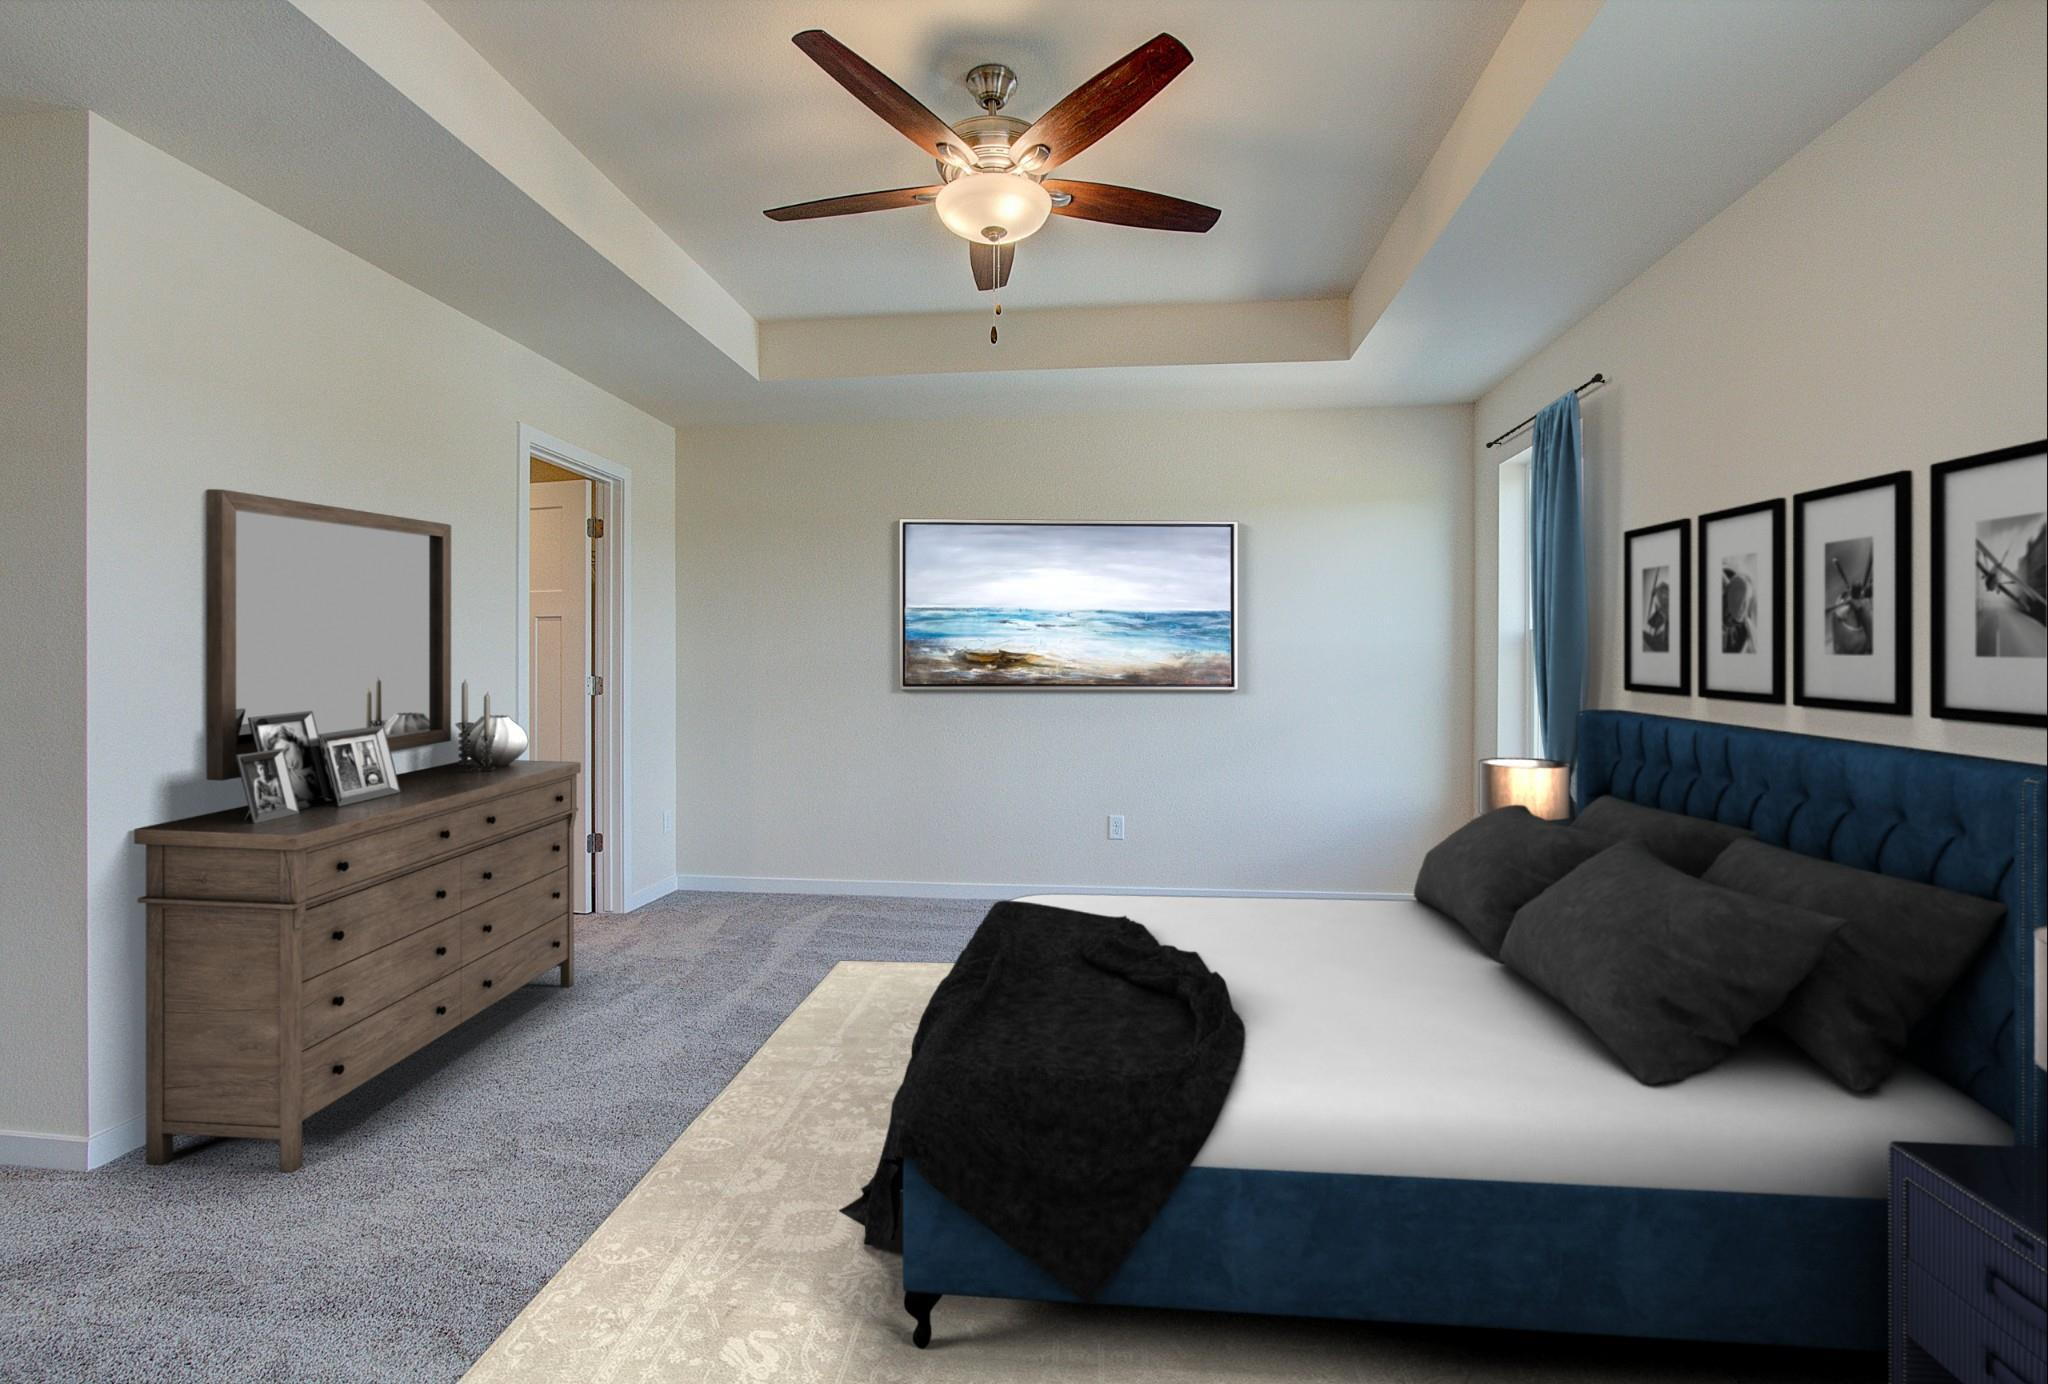 Bedroom featured in the Hudson By Harbor Homes in Ozaukee-Sheboygan, WI